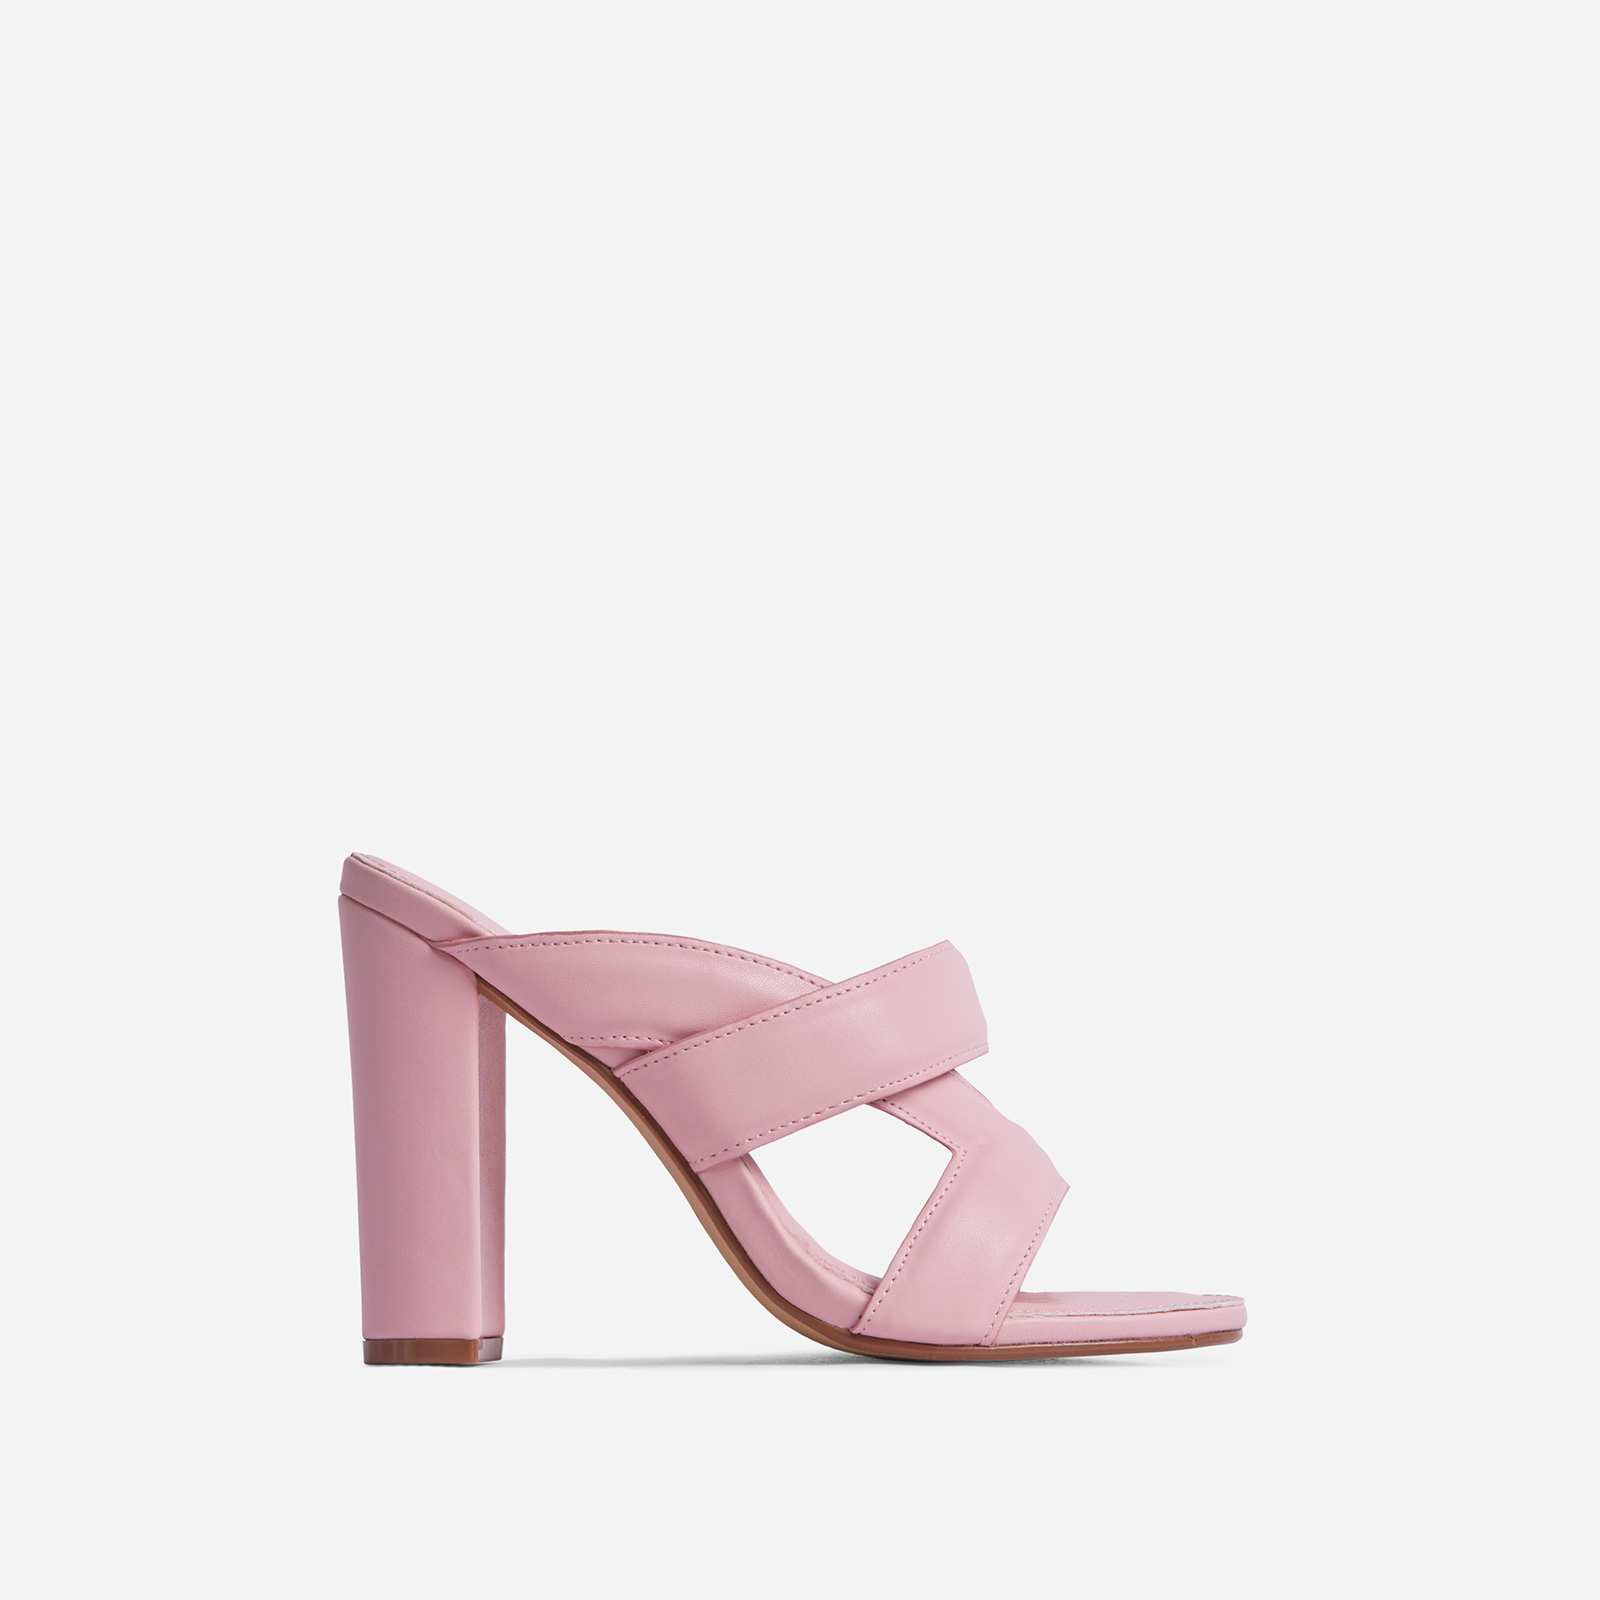 One-Up Cross Strap Detail Block Heel Mule In Pink Faux Leather